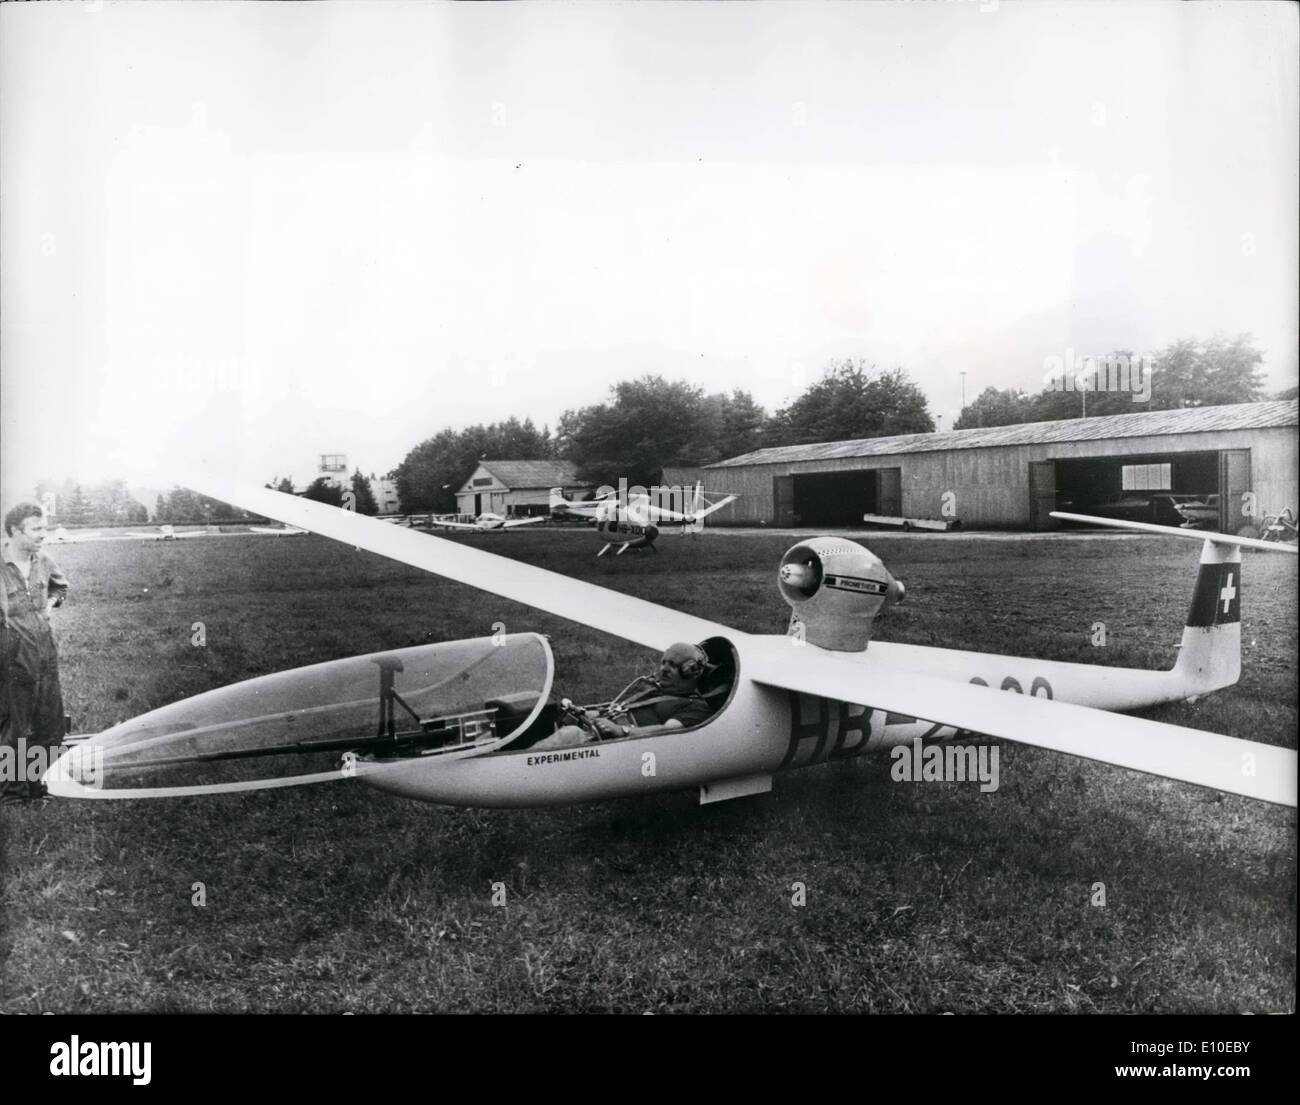 Aug. 08, 1972 - A Glider with jet-Propulsion On difference airports in Switzerland a new jet propulsion system for glider take- - Stock Image